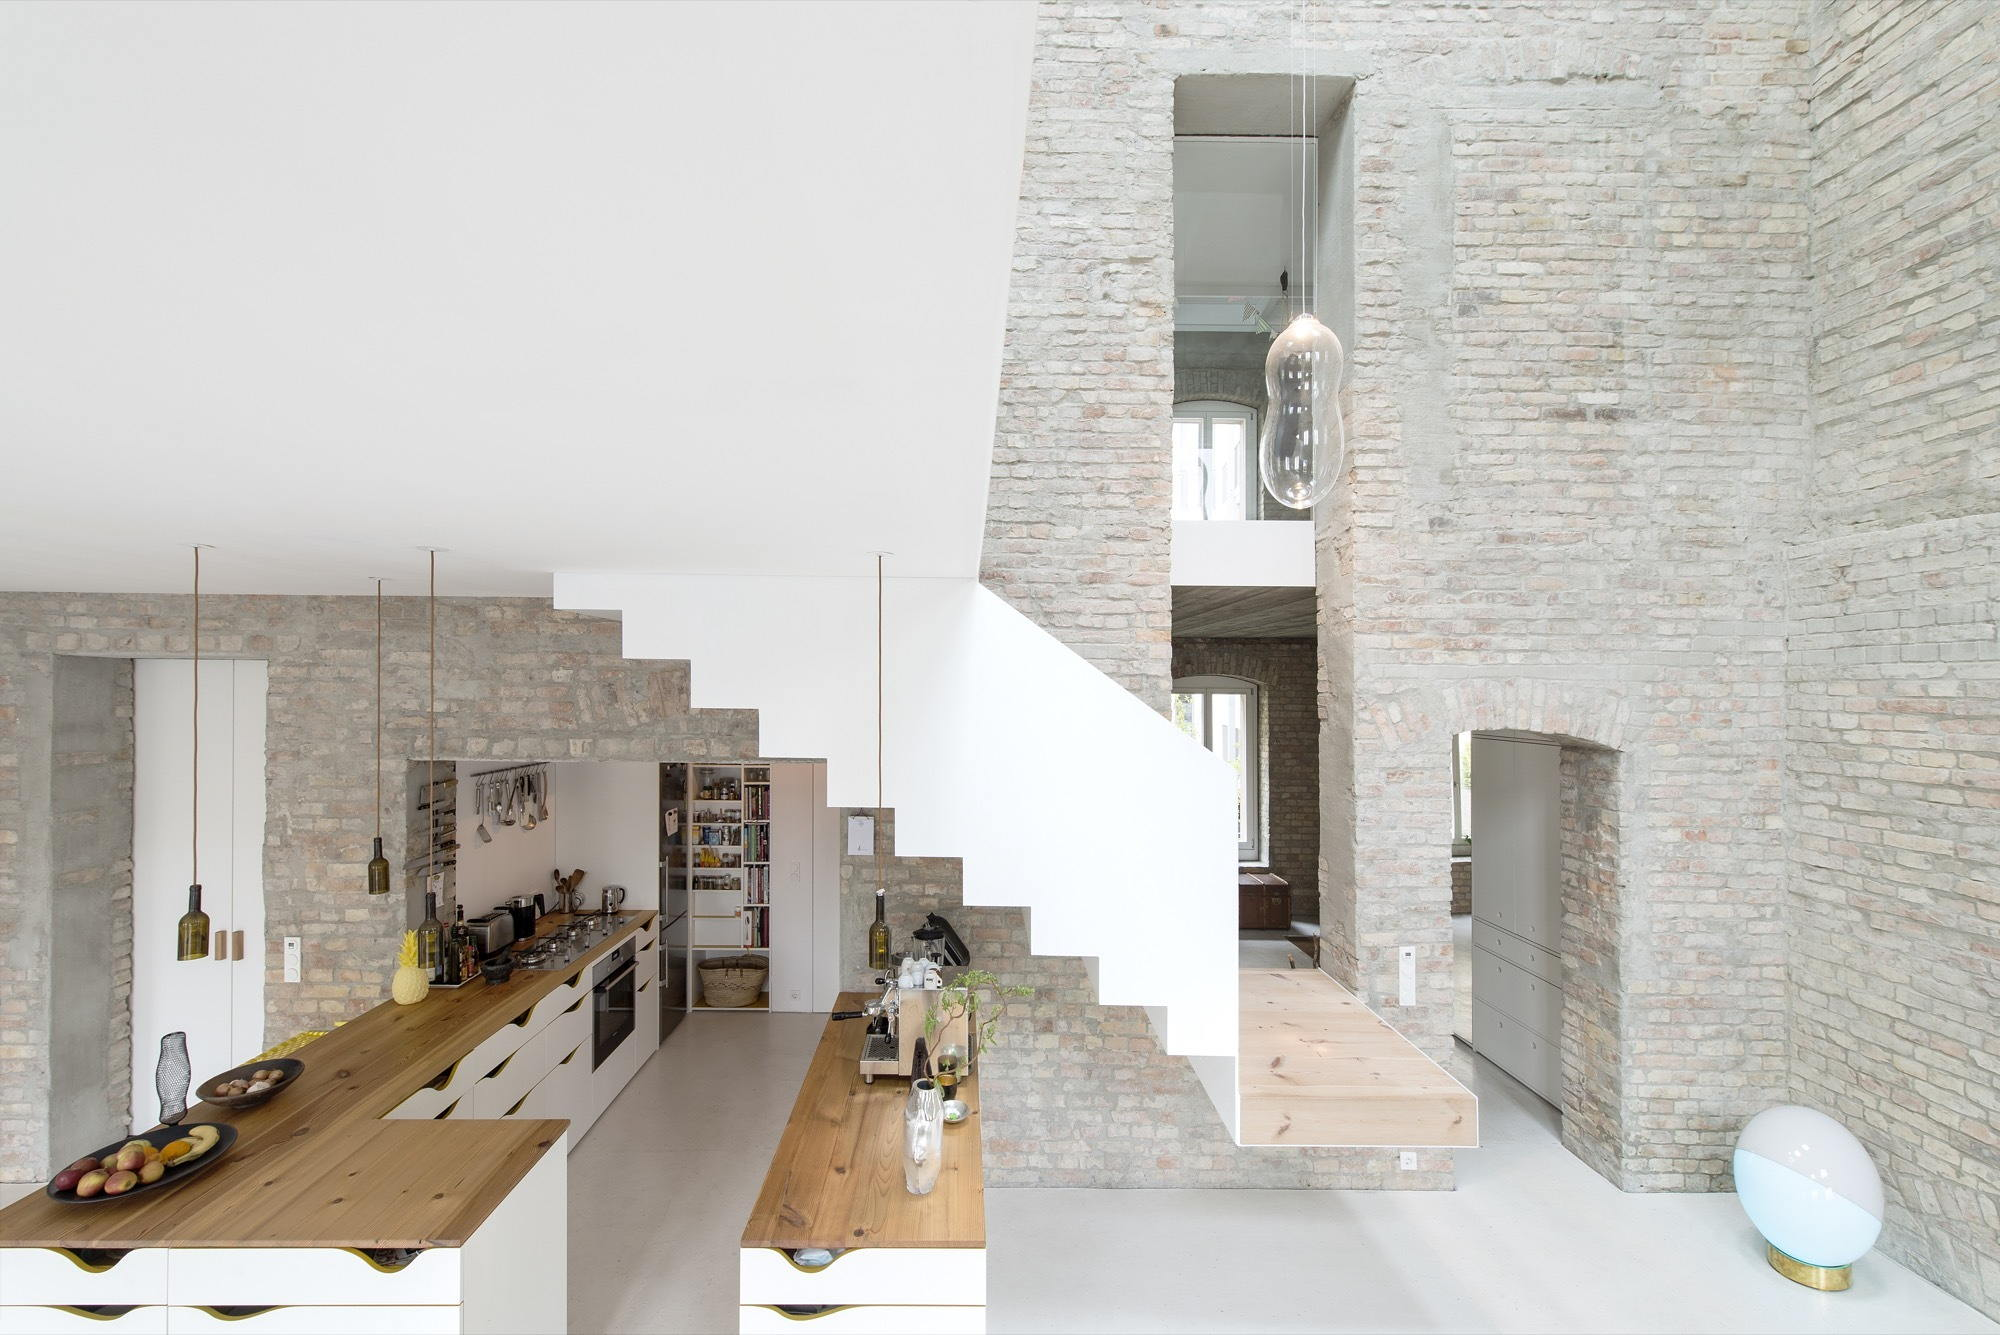 Reconstruction of The Old House in Berlin by asdfg Architekten